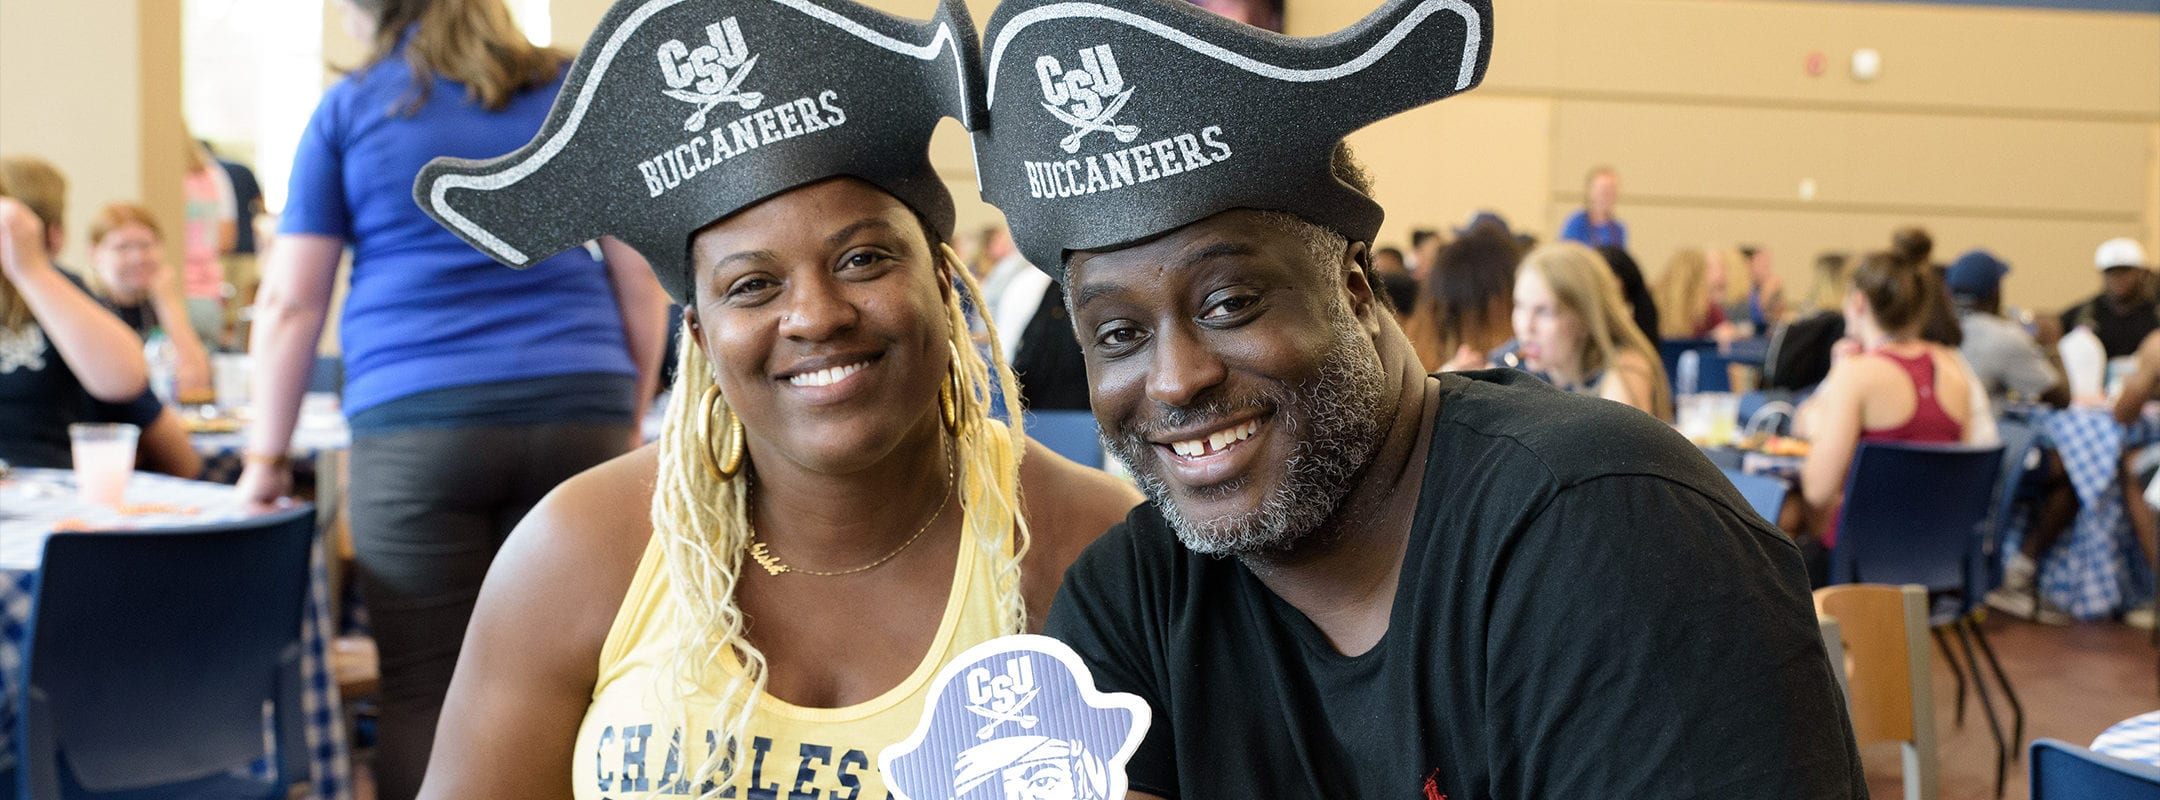 Two CSU parents wearing Buccaneers hats holding a vintage Bucky logo, smiling at the camera in the Dining Hall.